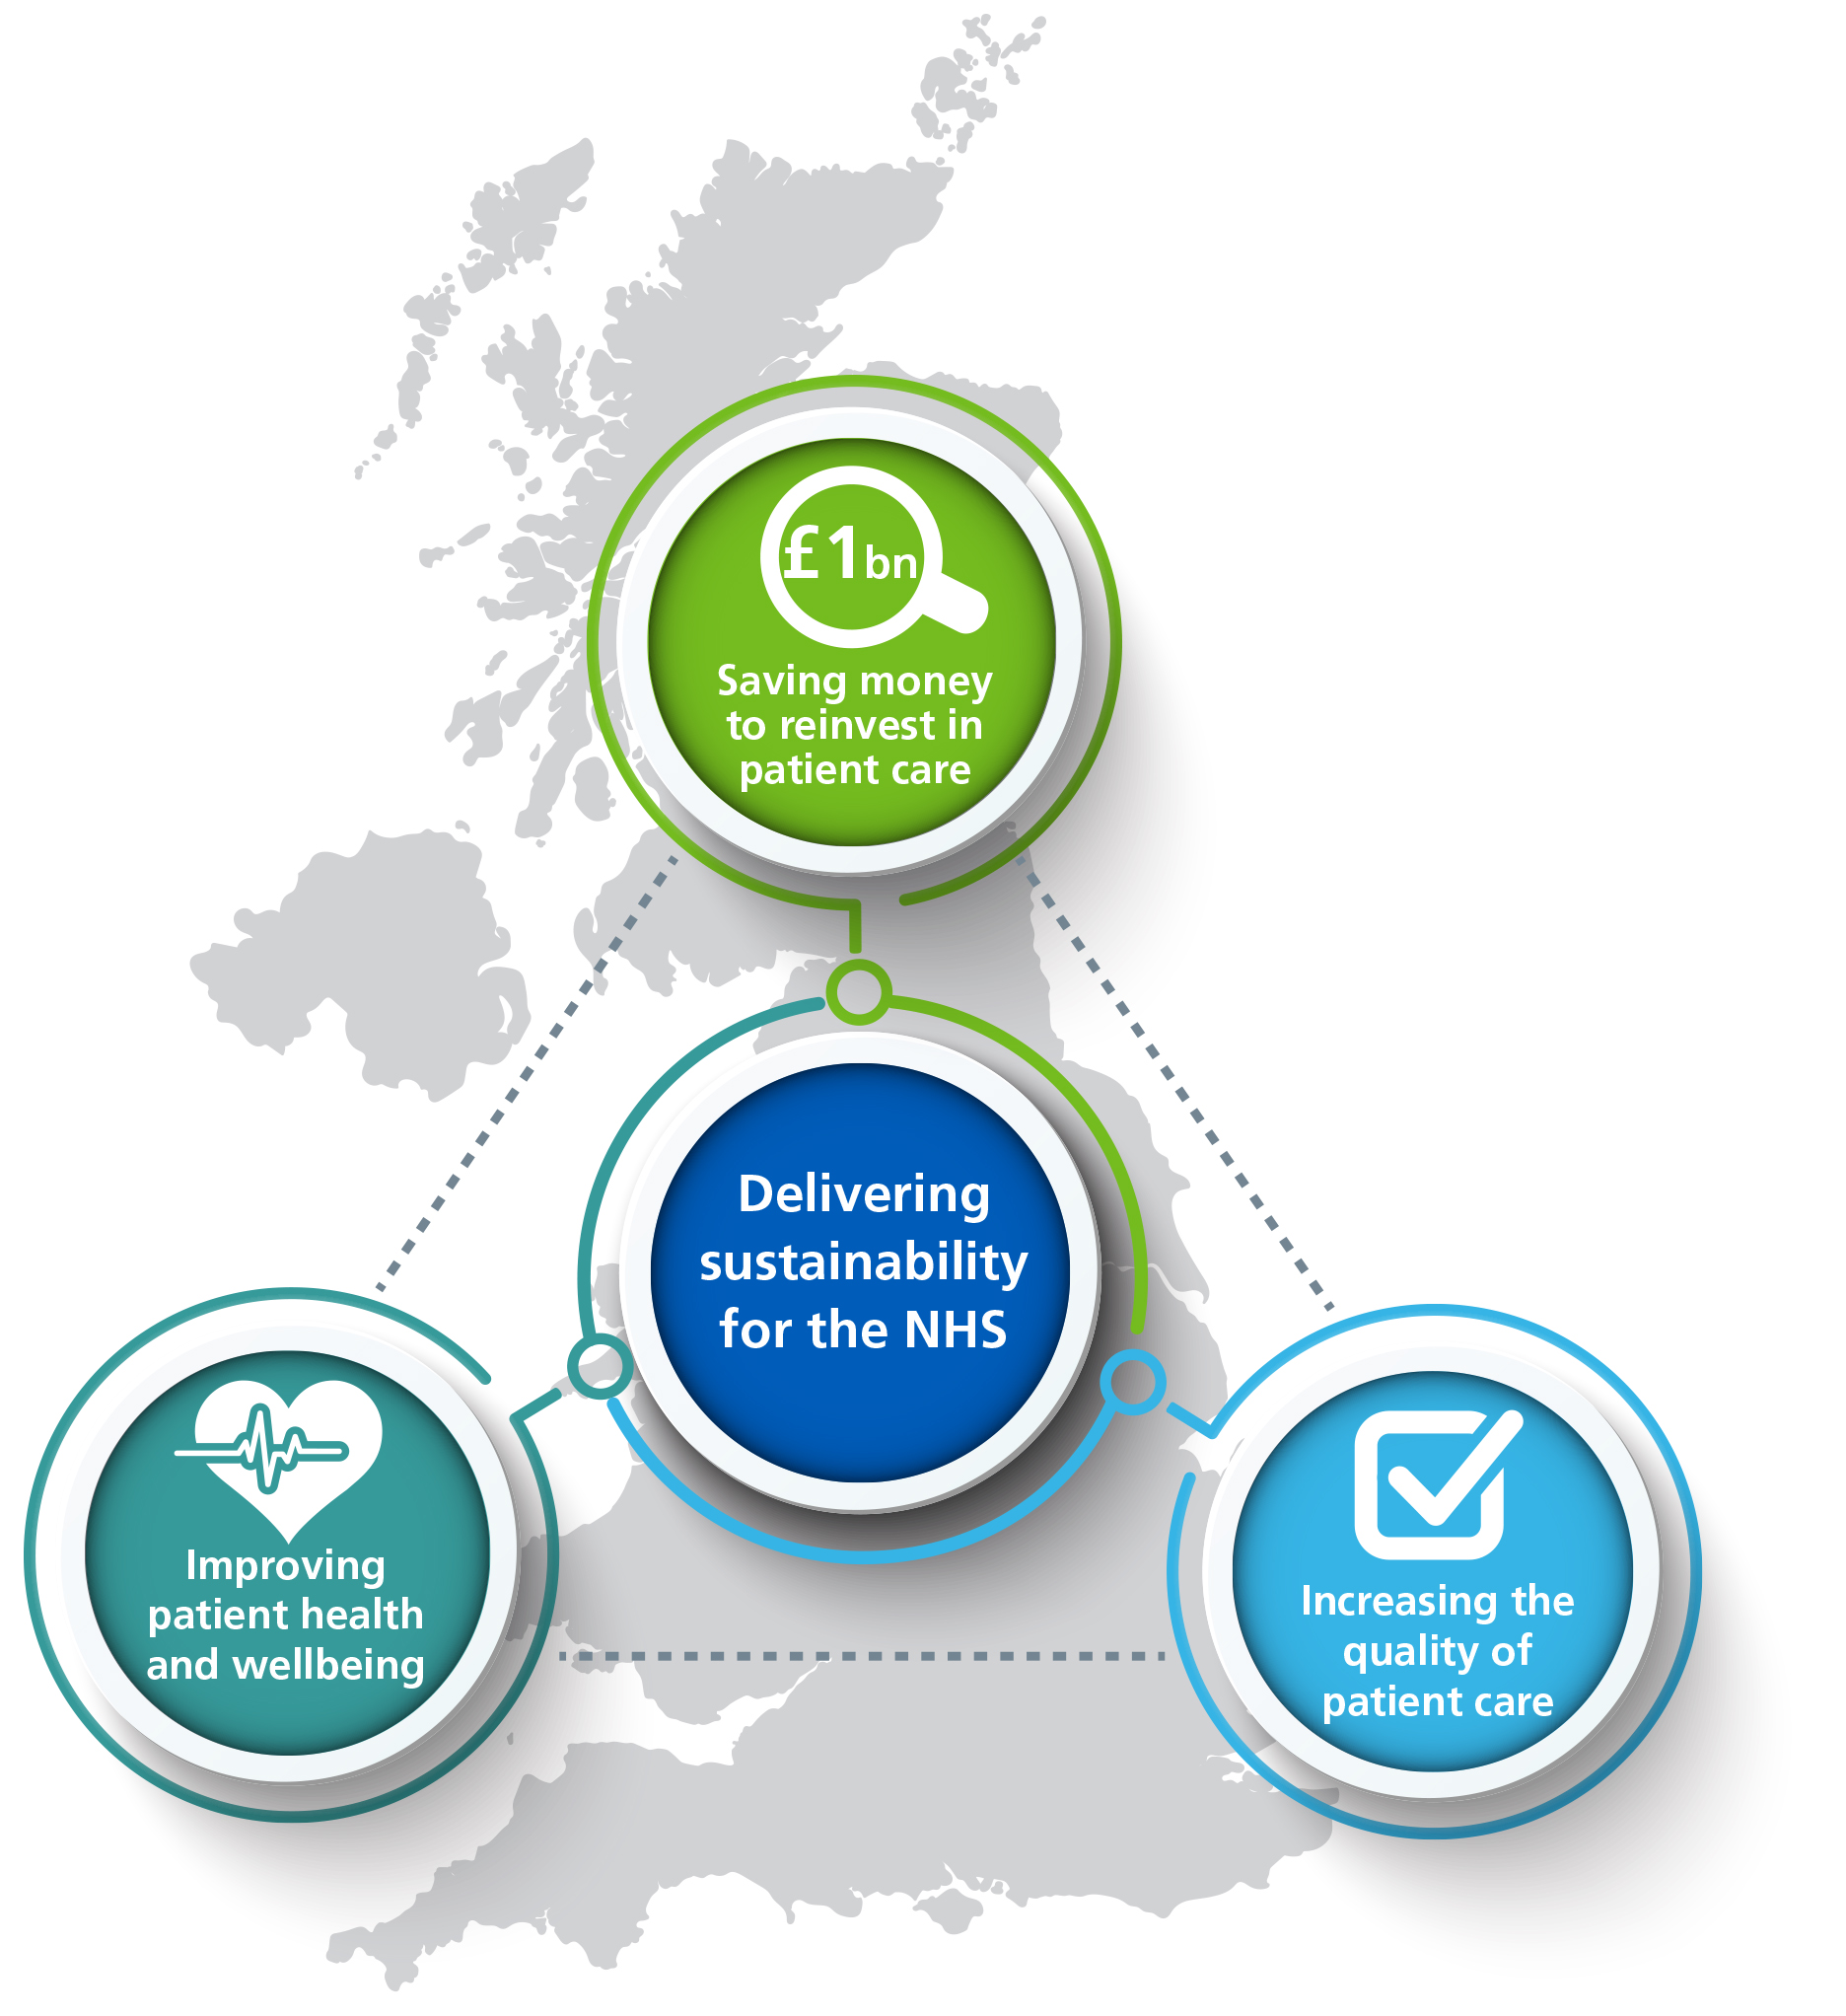 Delivering sustainability for the NHS by saving money to reinvest in patient care, improving patient health and wellbeing and increasing the value of patient care.